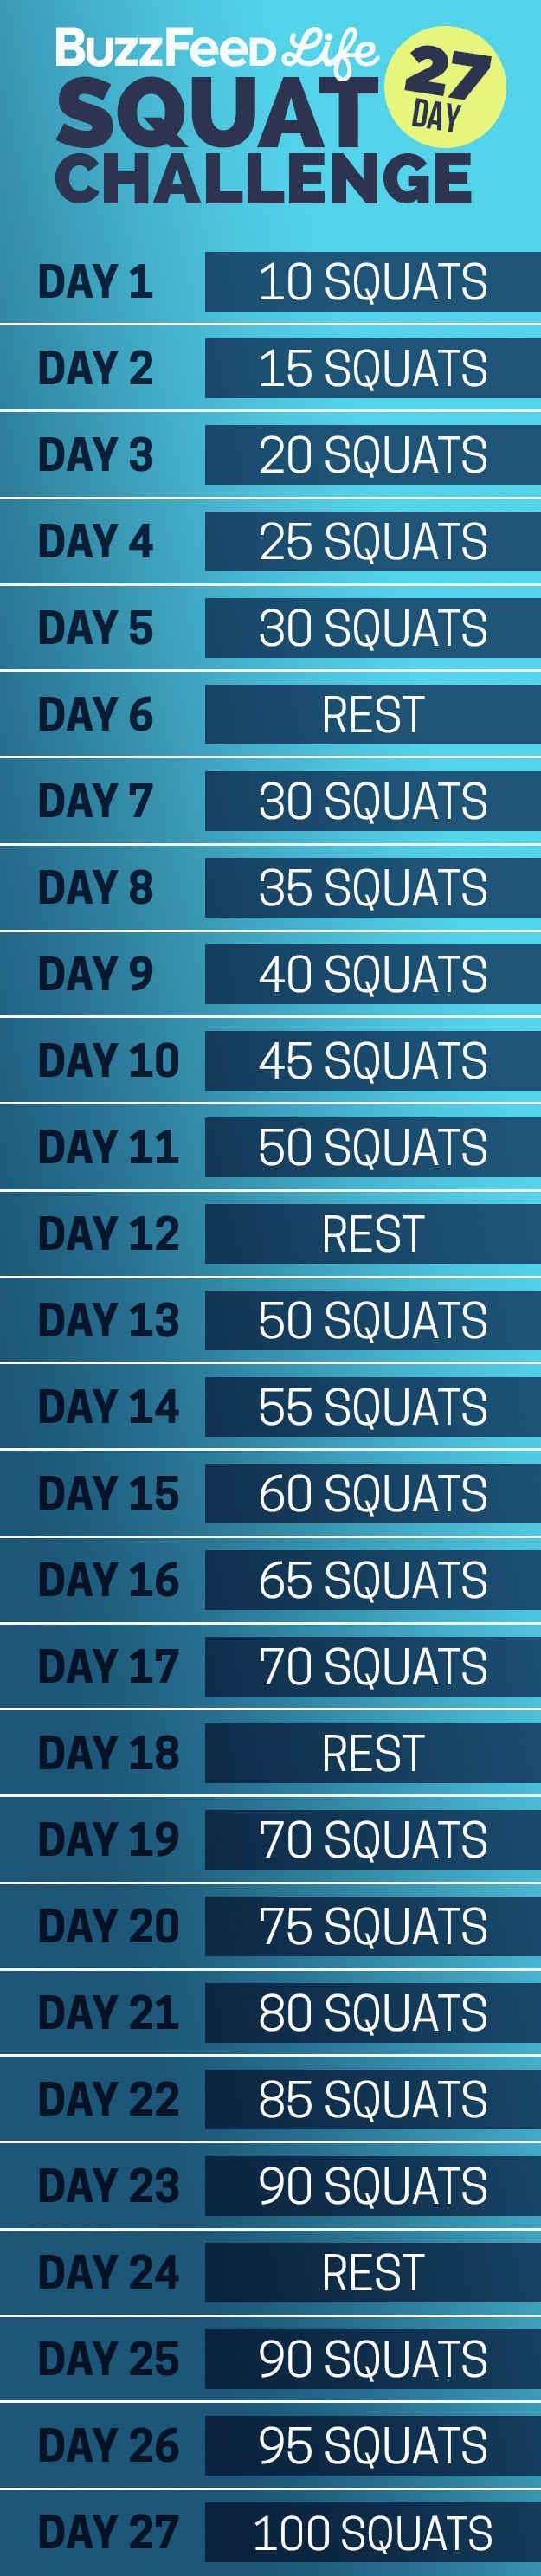 5 day workout challenge to burn fat